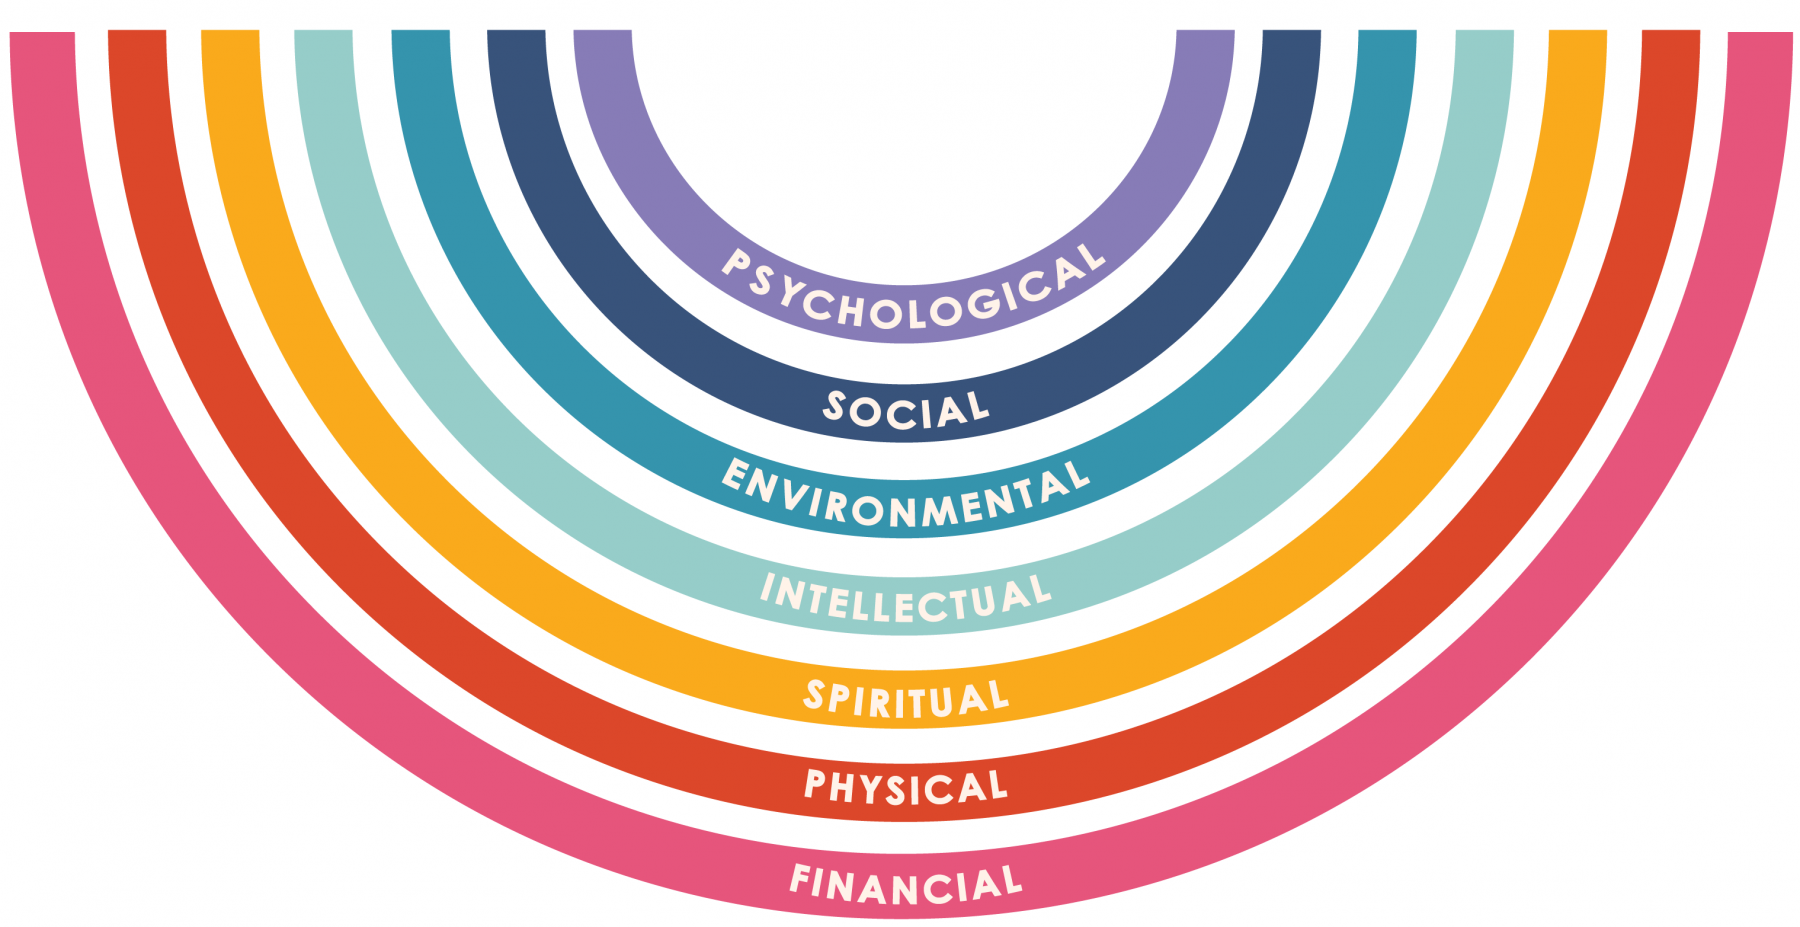 Wellness Matters Logo with 7 dimensions:  psychological (emotional), physical, intellectual, environmental, social, financial, and spiritual wellness.